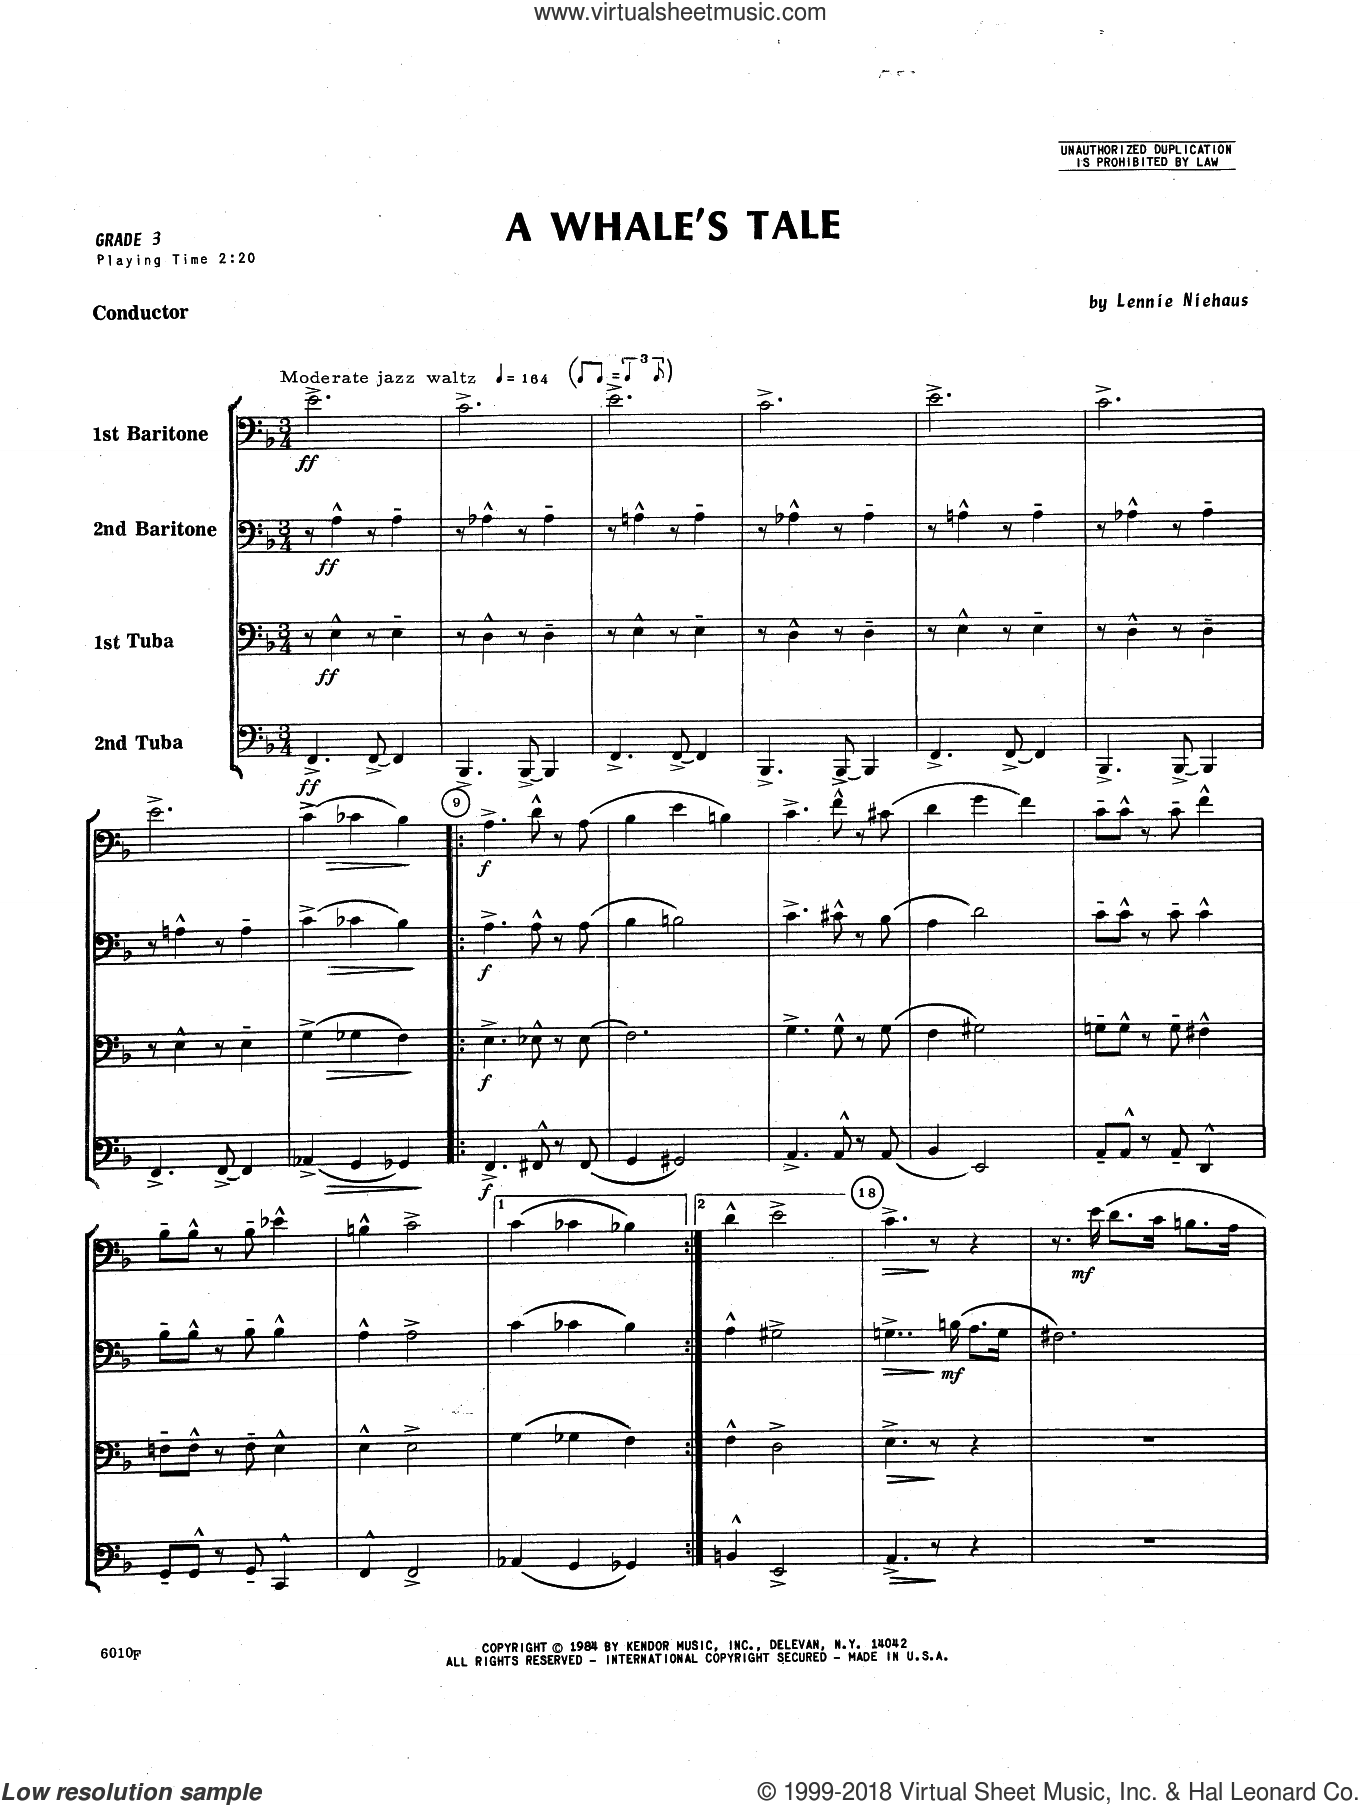 A Whale's Tale (COMPLETE) sheet music for brass ensemble by Lennie Niehaus, intermediate. Score Image Preview.